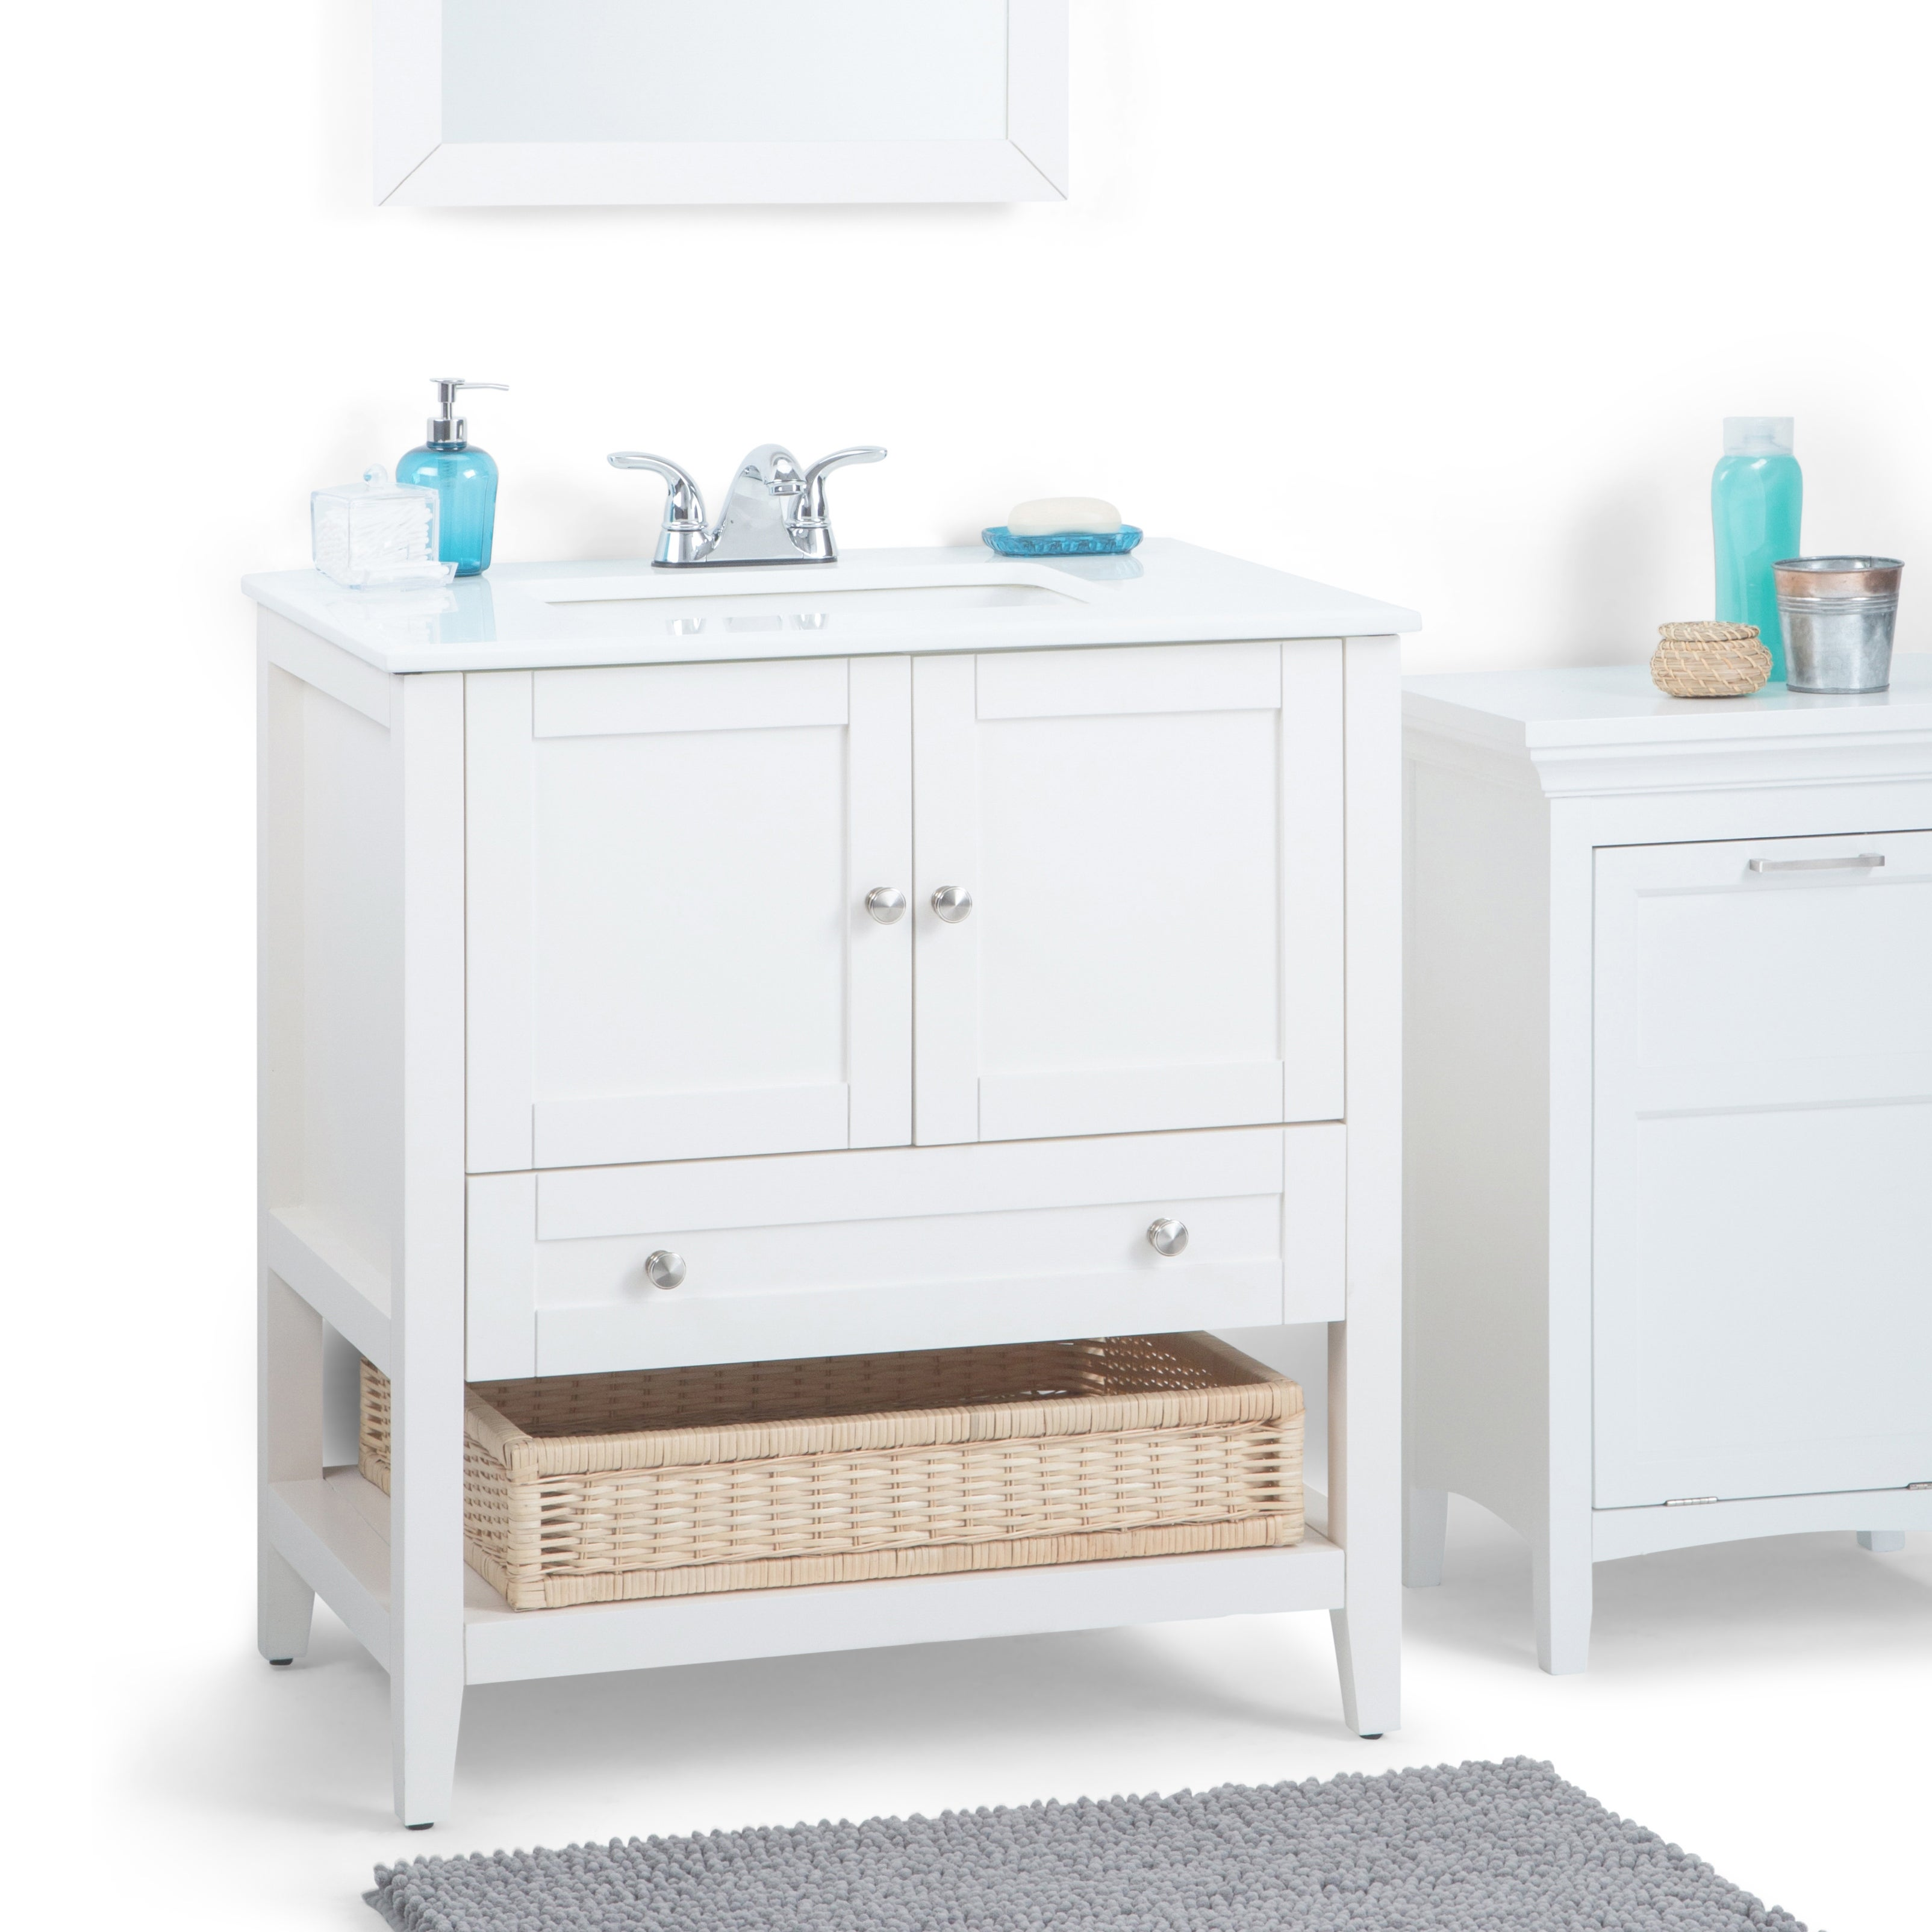 Wyndenhall Belmont 30 Inch Contemporary Bath Vanity With White Engineered Quartz Marble Extra Thick Top Overstock 9960005